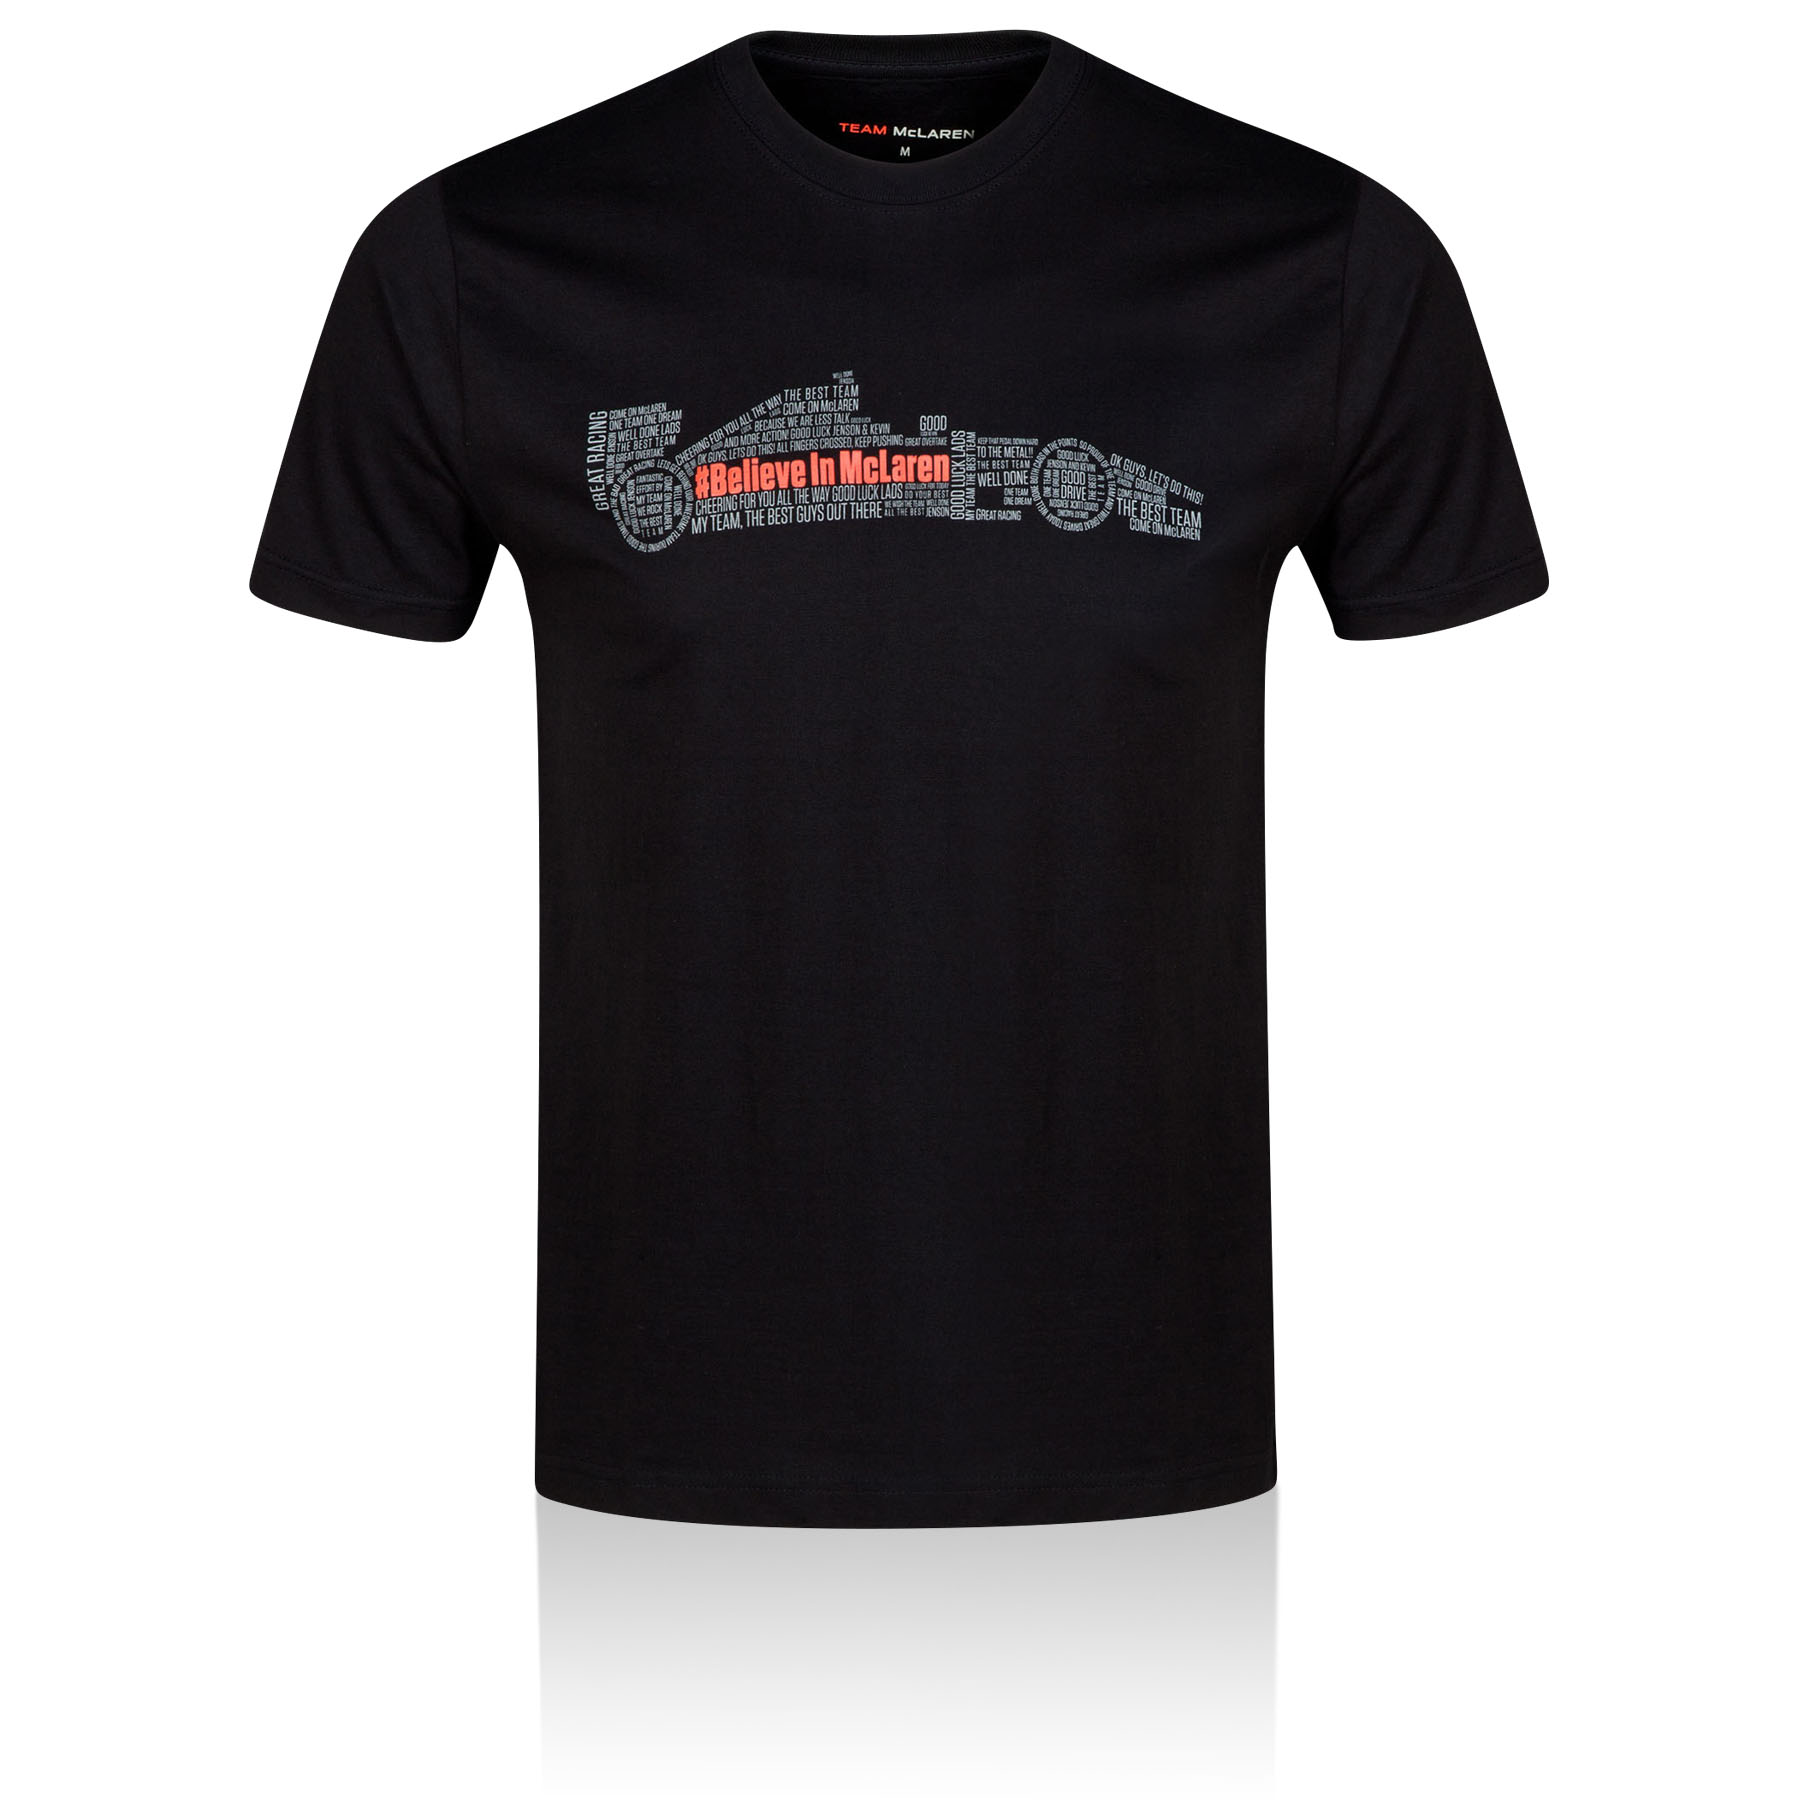 McLaren Mercedes Tweet T-Shirt